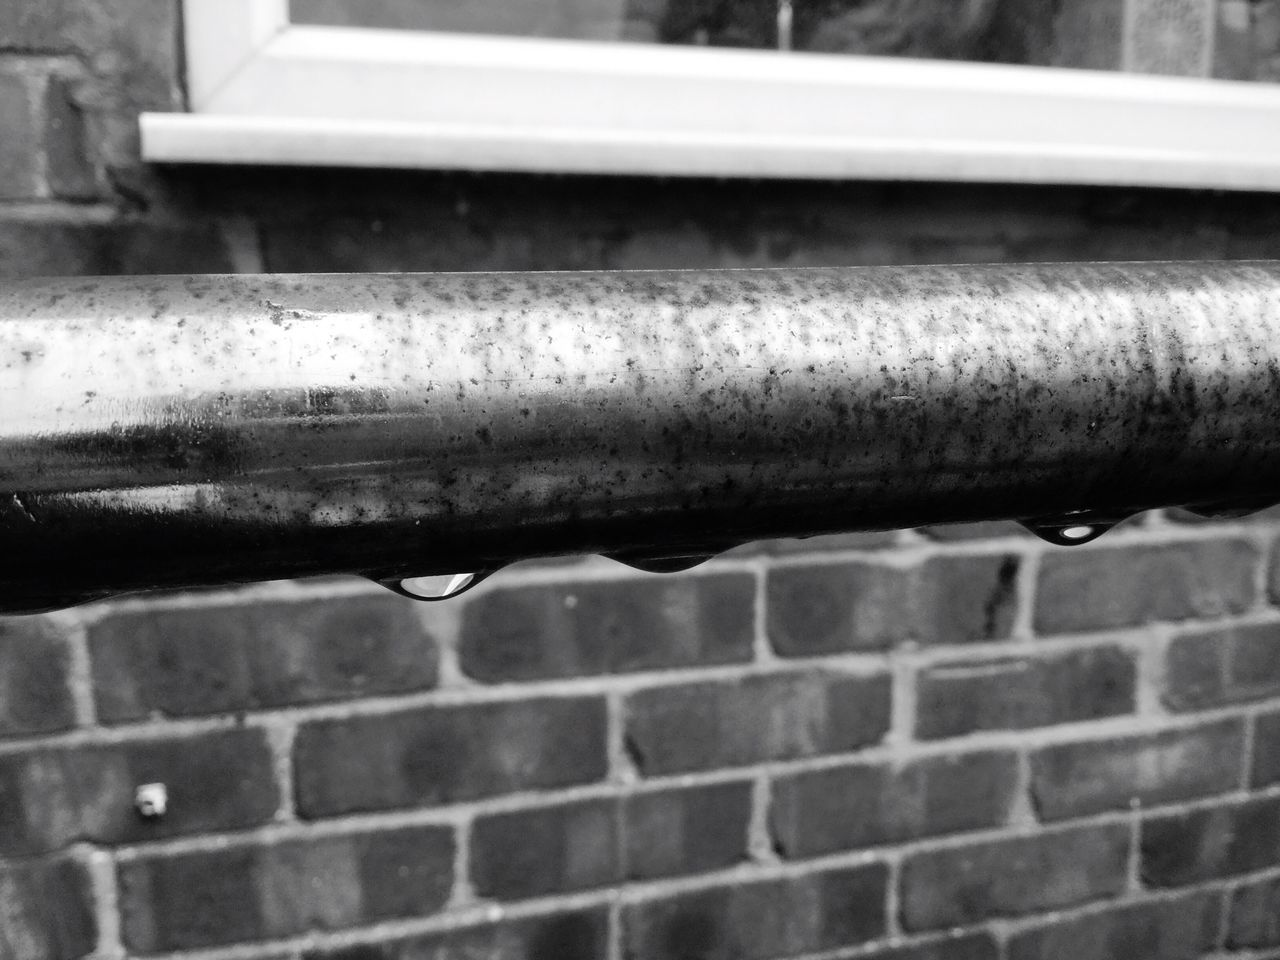 close-up, pipe - tube, metal, wall, brick wall, no people, built structure, day, wall - building feature, architecture, brick, pattern, water pipe, outdoors, pipeline, pipe, focus on foreground, building exterior, selective focus, old